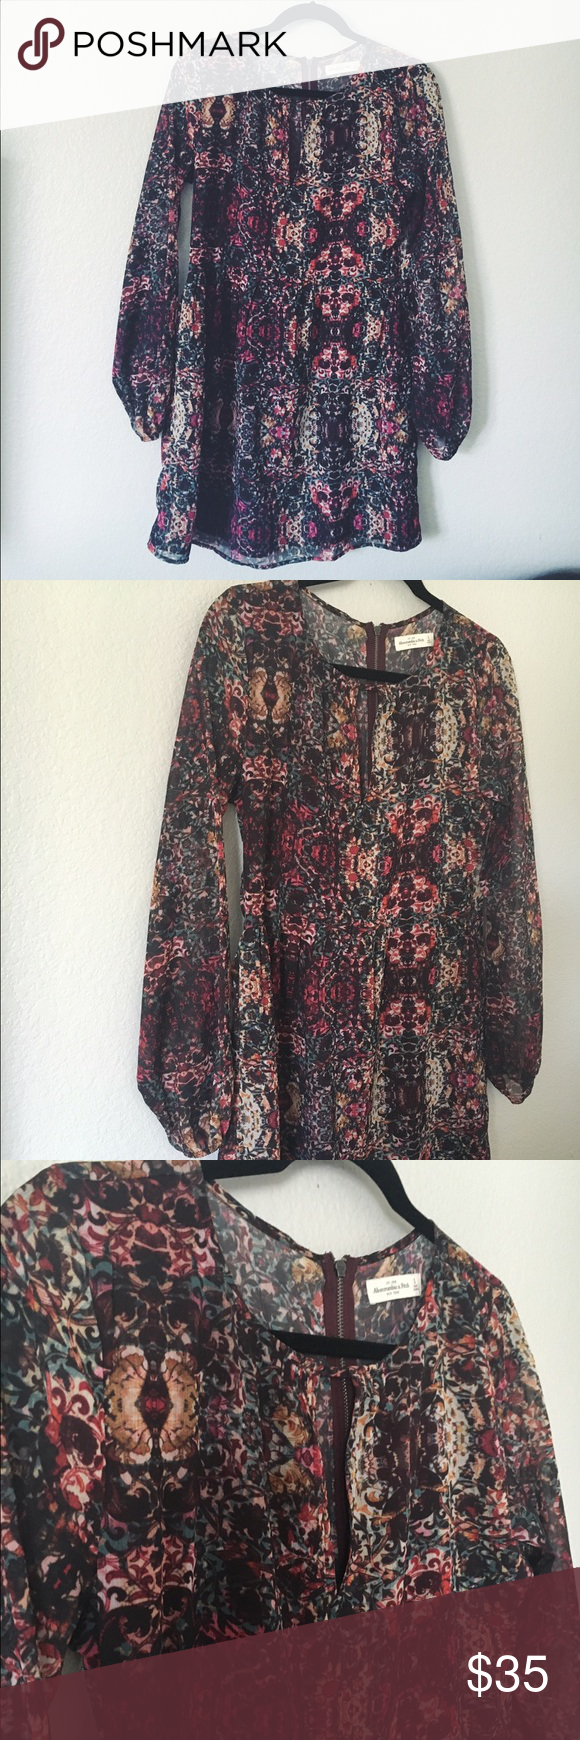 Abercrombie & Fitch Floral Bohemian Dress long sleeve dress with small keyhole slit at the neckline Abercrombie & Fitch Dresses Long Sleeve